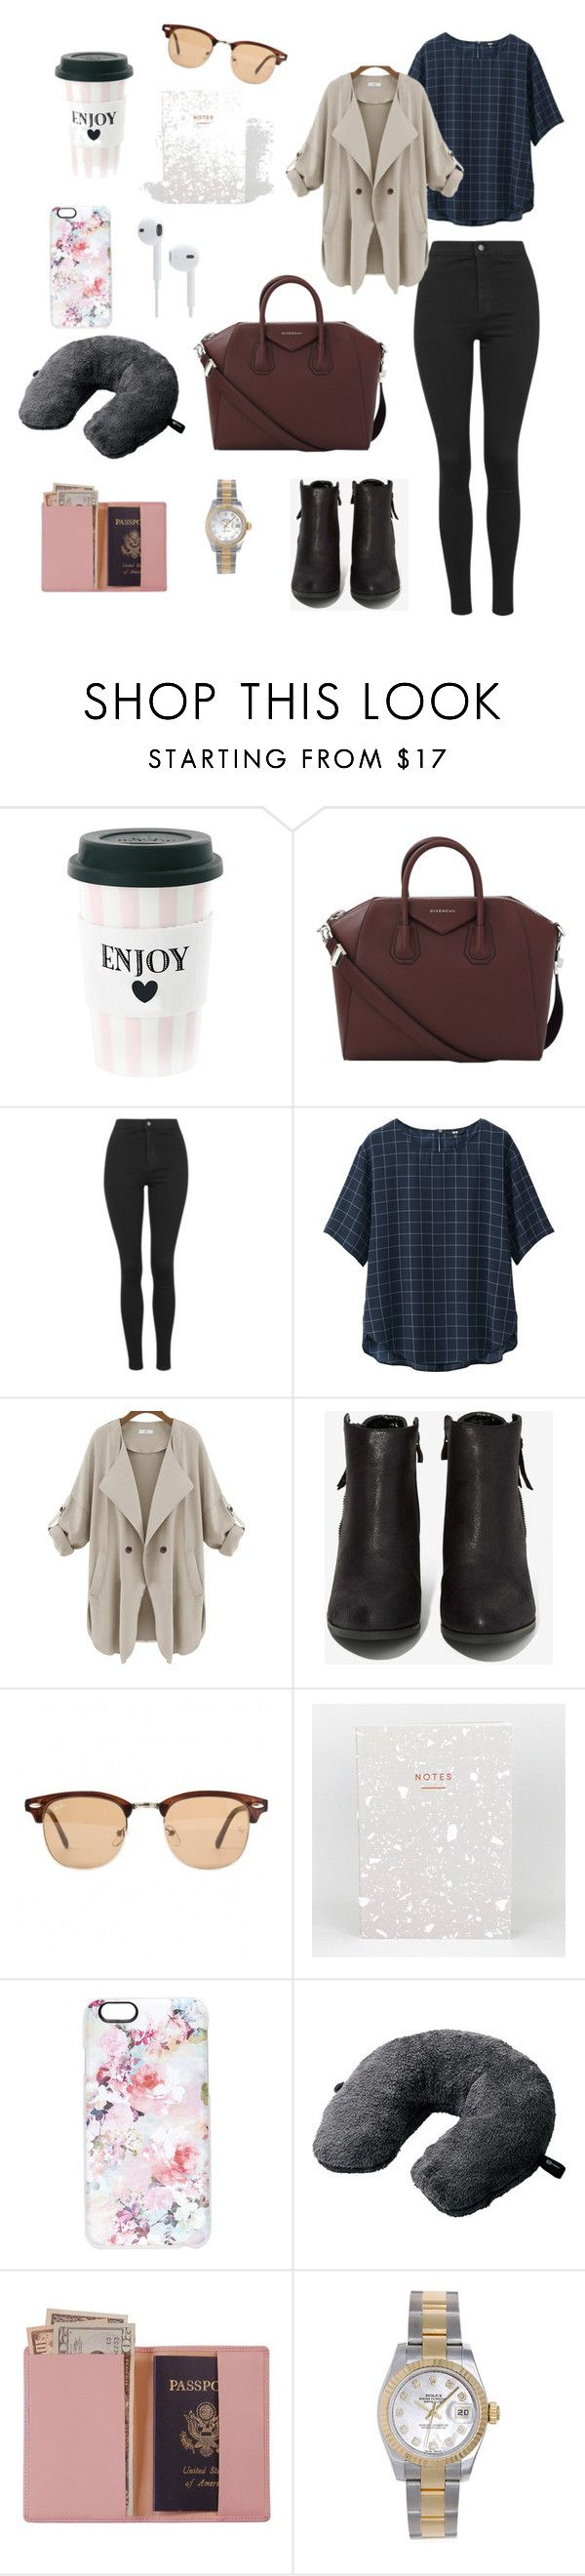 """Eleanor Calder inspired travel outfit"" by enk98 on Polyvore featuring Givenchy, Topshop, Uniqlo, N.Y.L.A., Ray-Ban, Casetify, Go Travel, Royce Leather and Rolex"